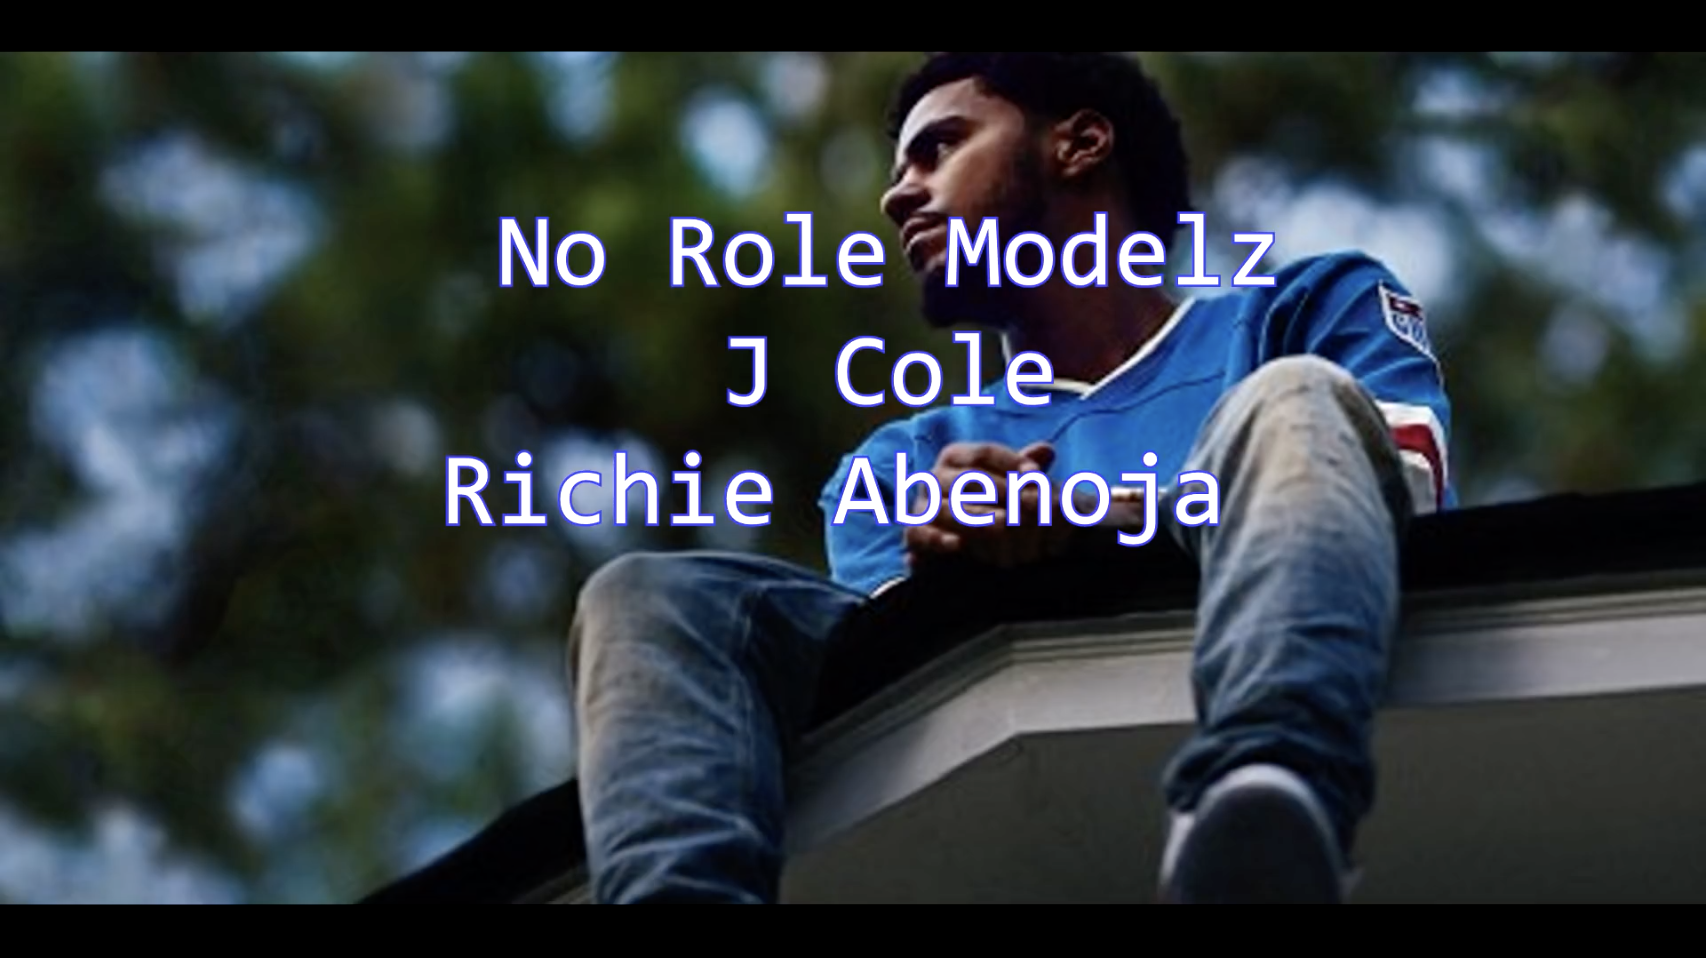 J Cole - No Role Models